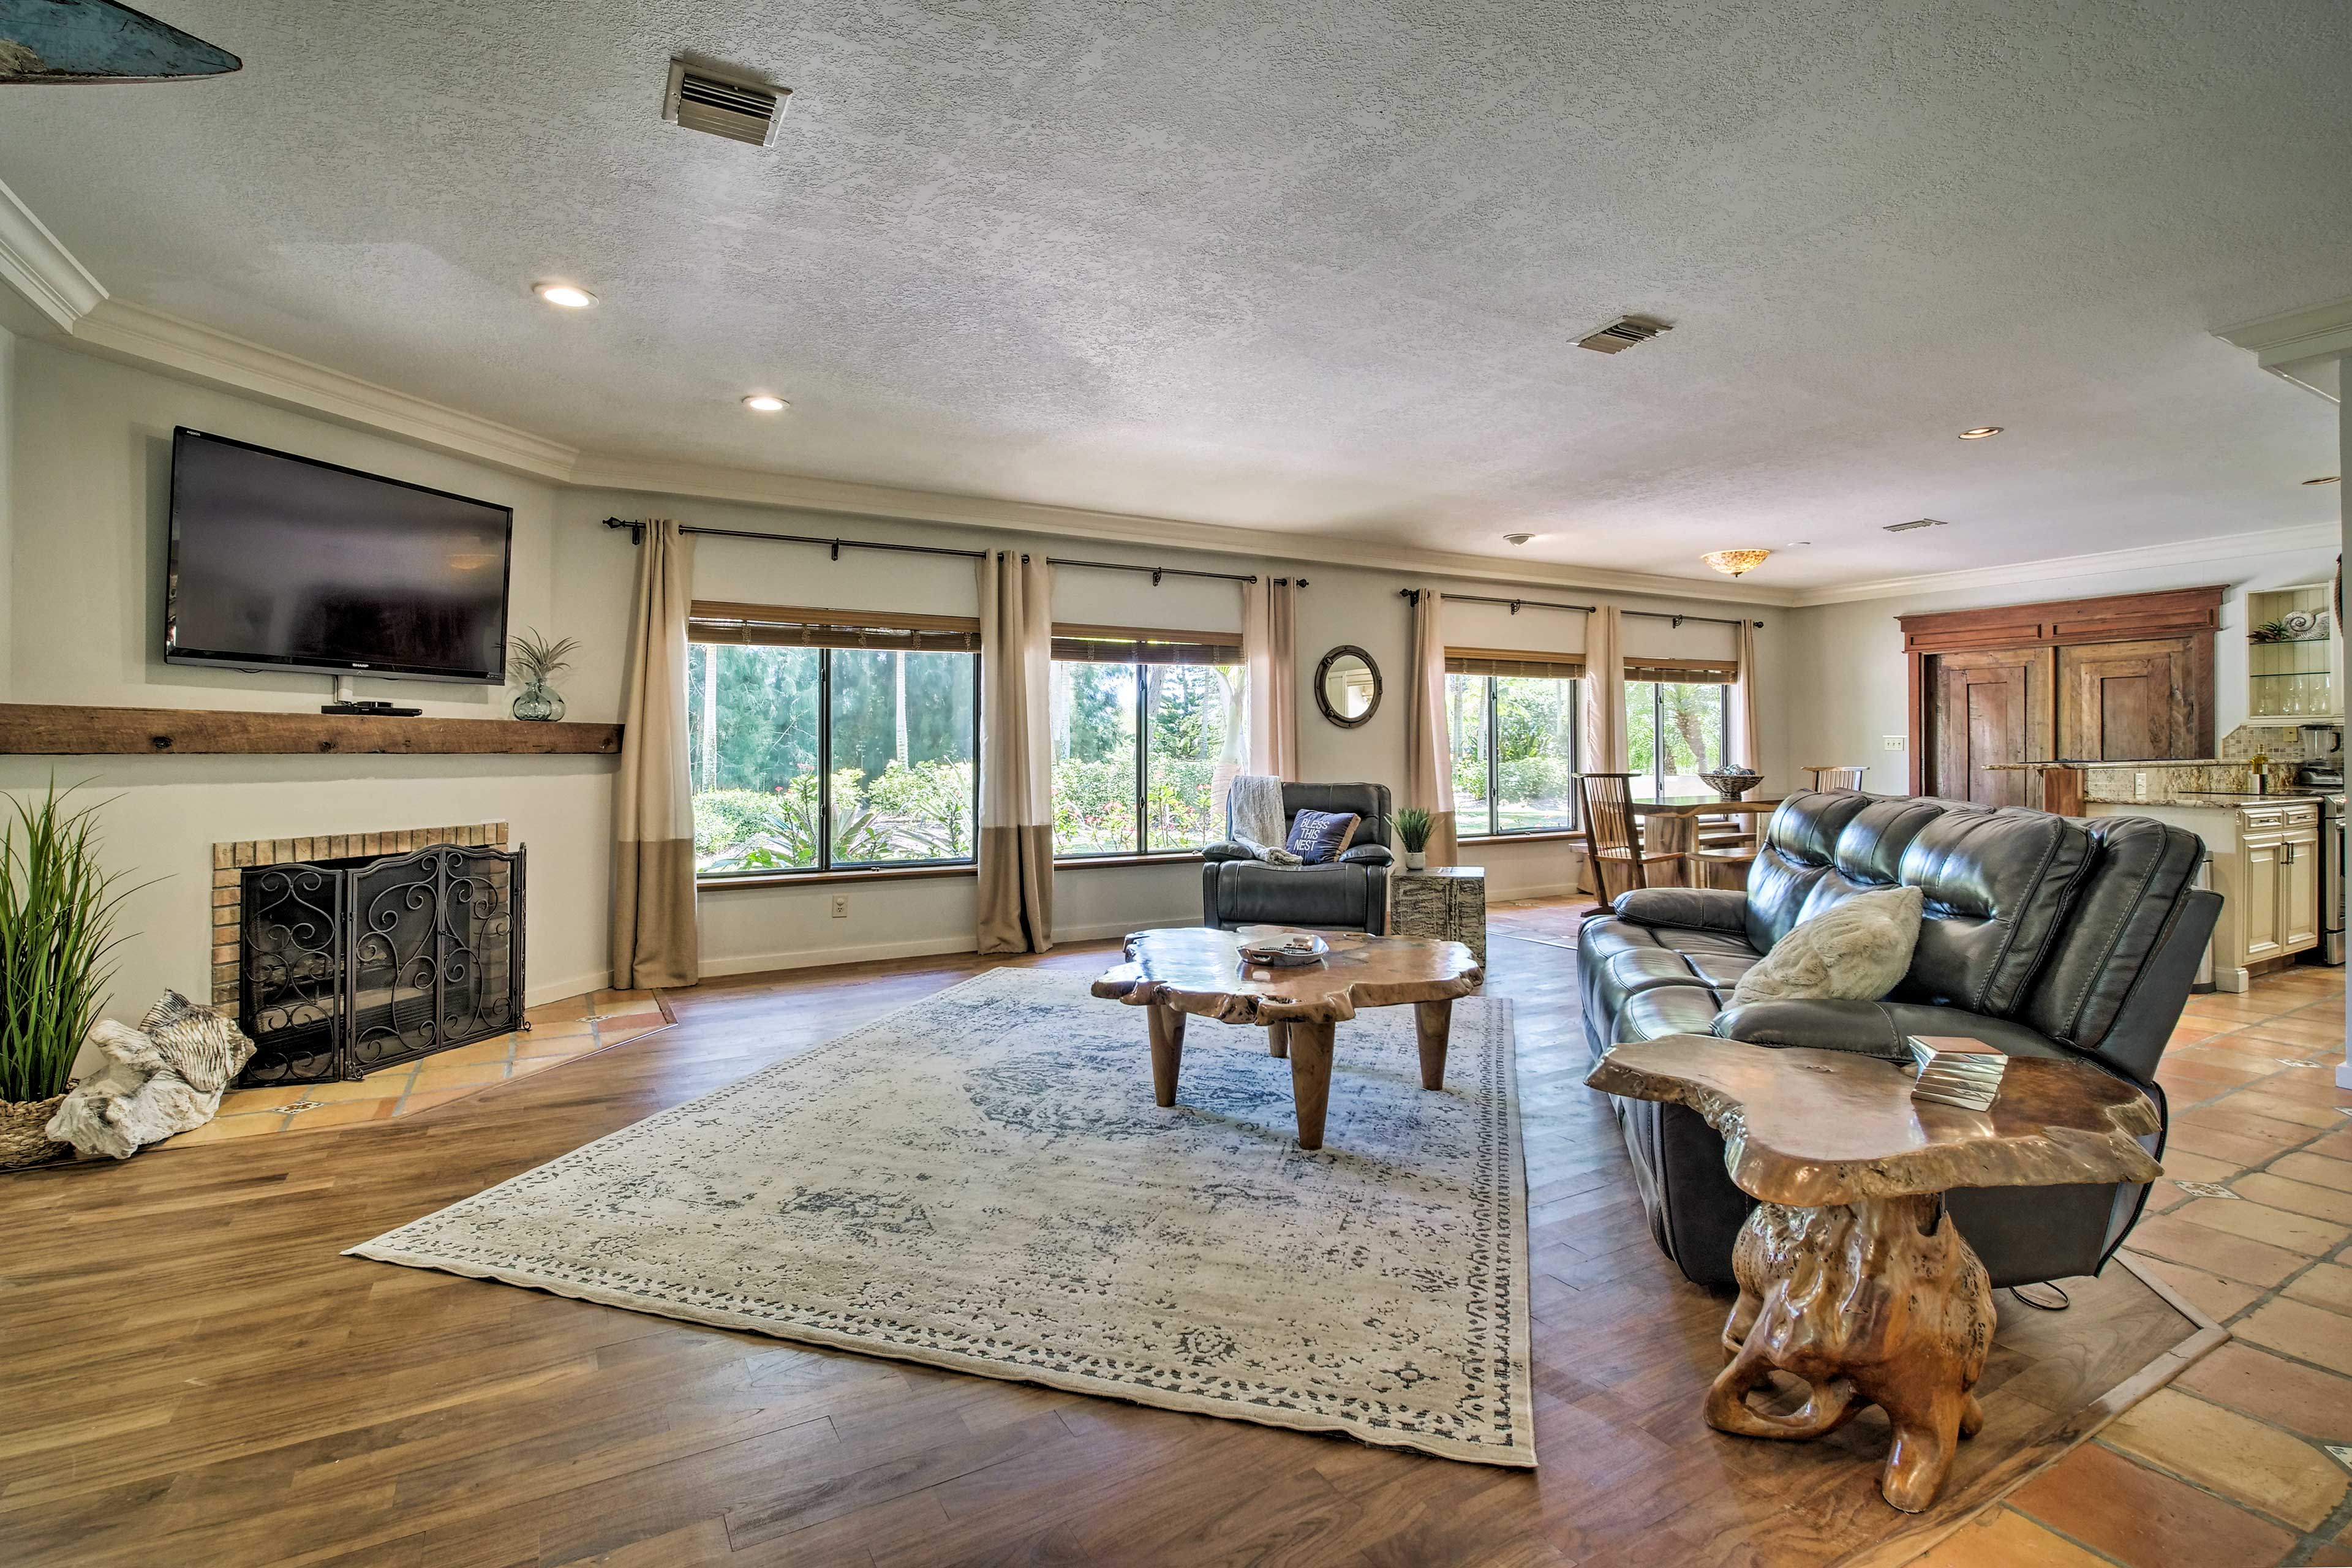 Natural light will fill the home making it inviting